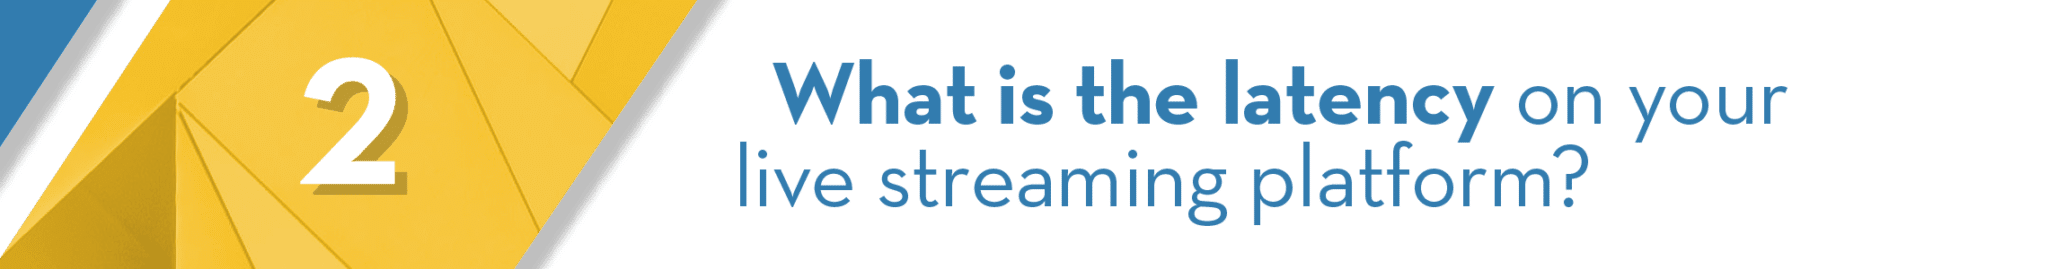 2-what-is-the-latency-of-your-live-streaming-platform